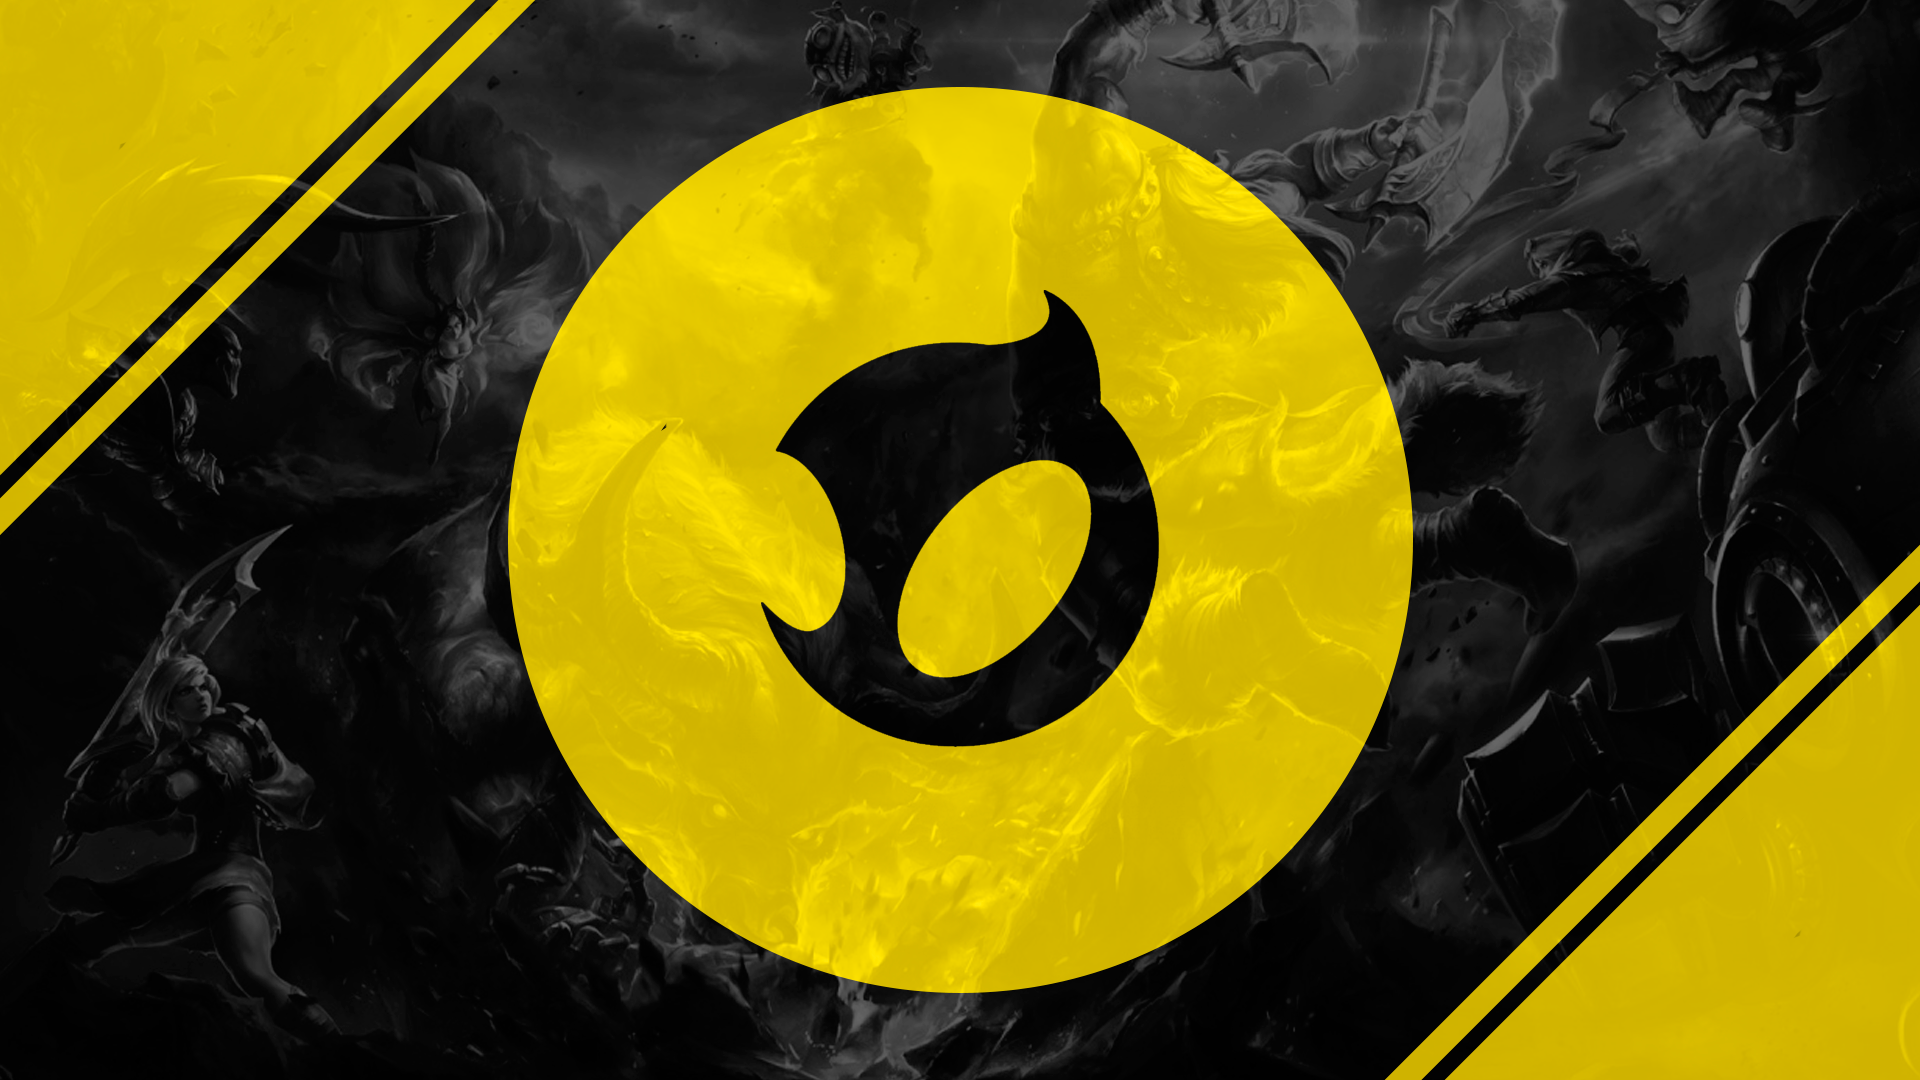 Team Dignitas wallpaper